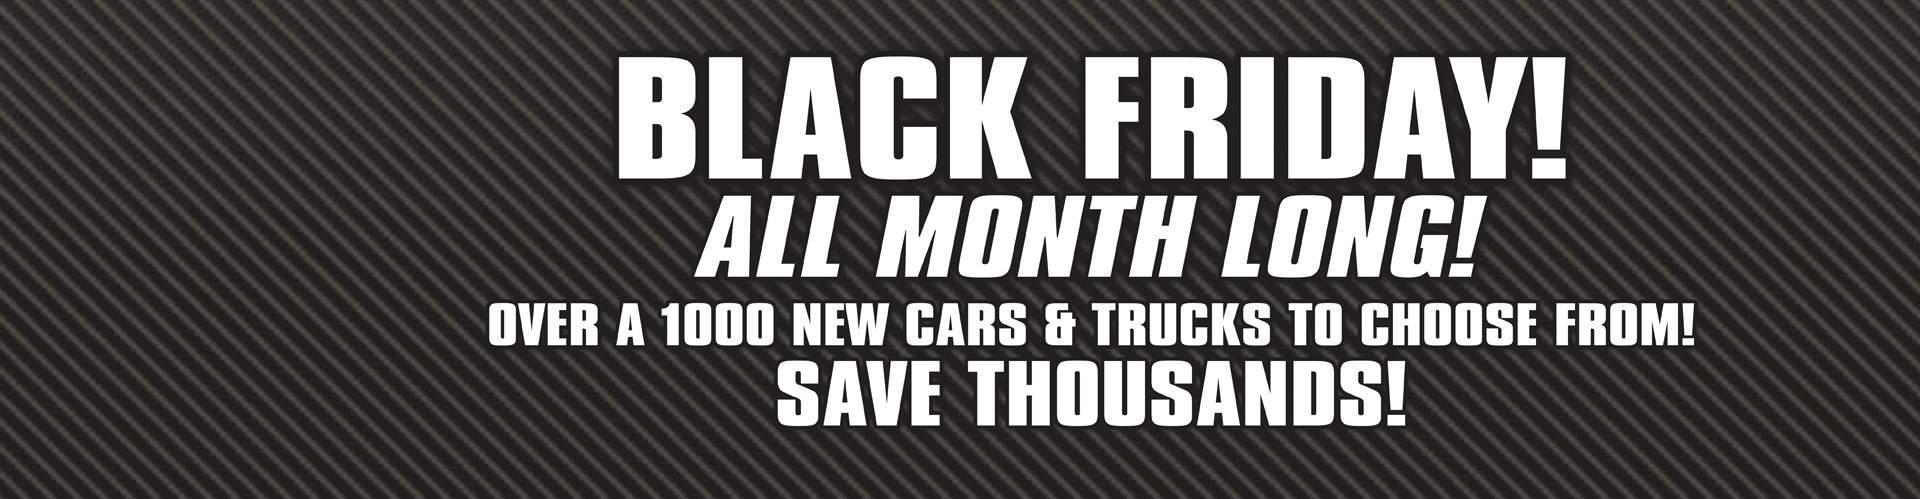 Black Friday Event! - All Month Long!